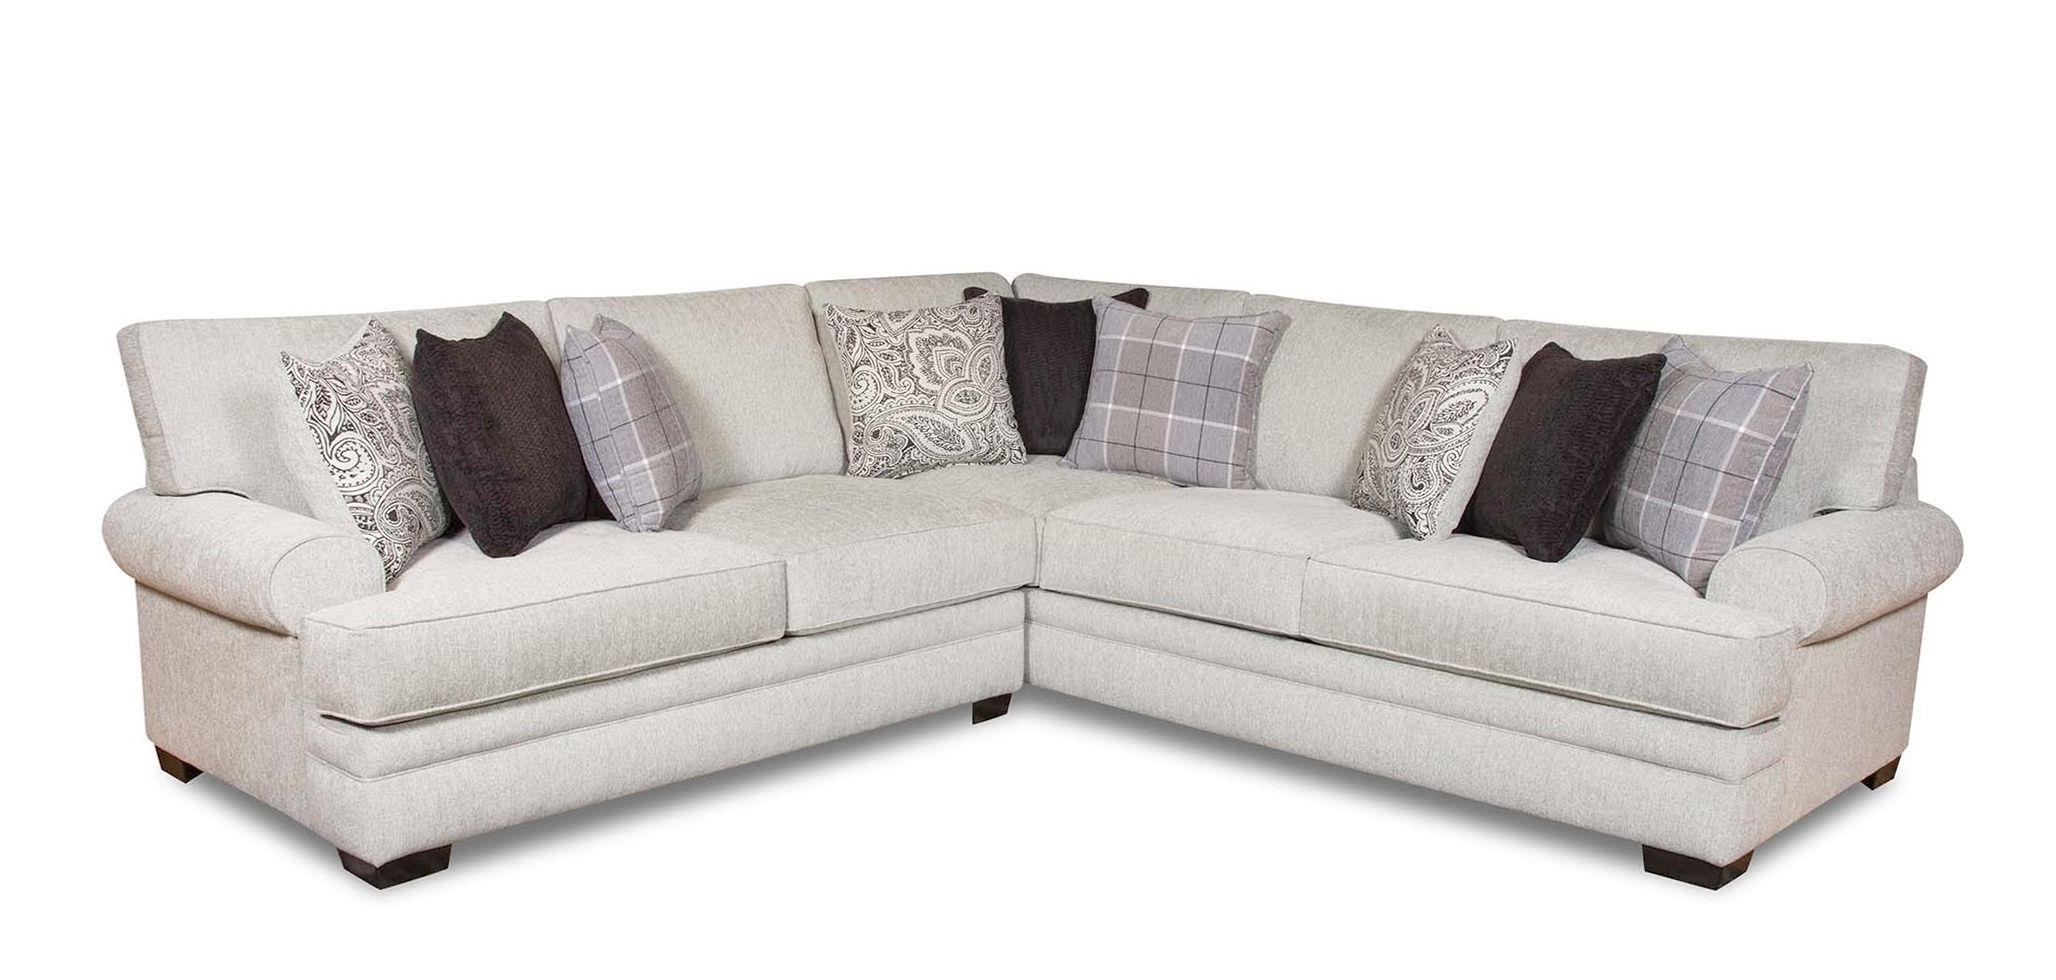 2019 Corinthian 5900 2 Piece Transitional Sectional (View 1 of 20)